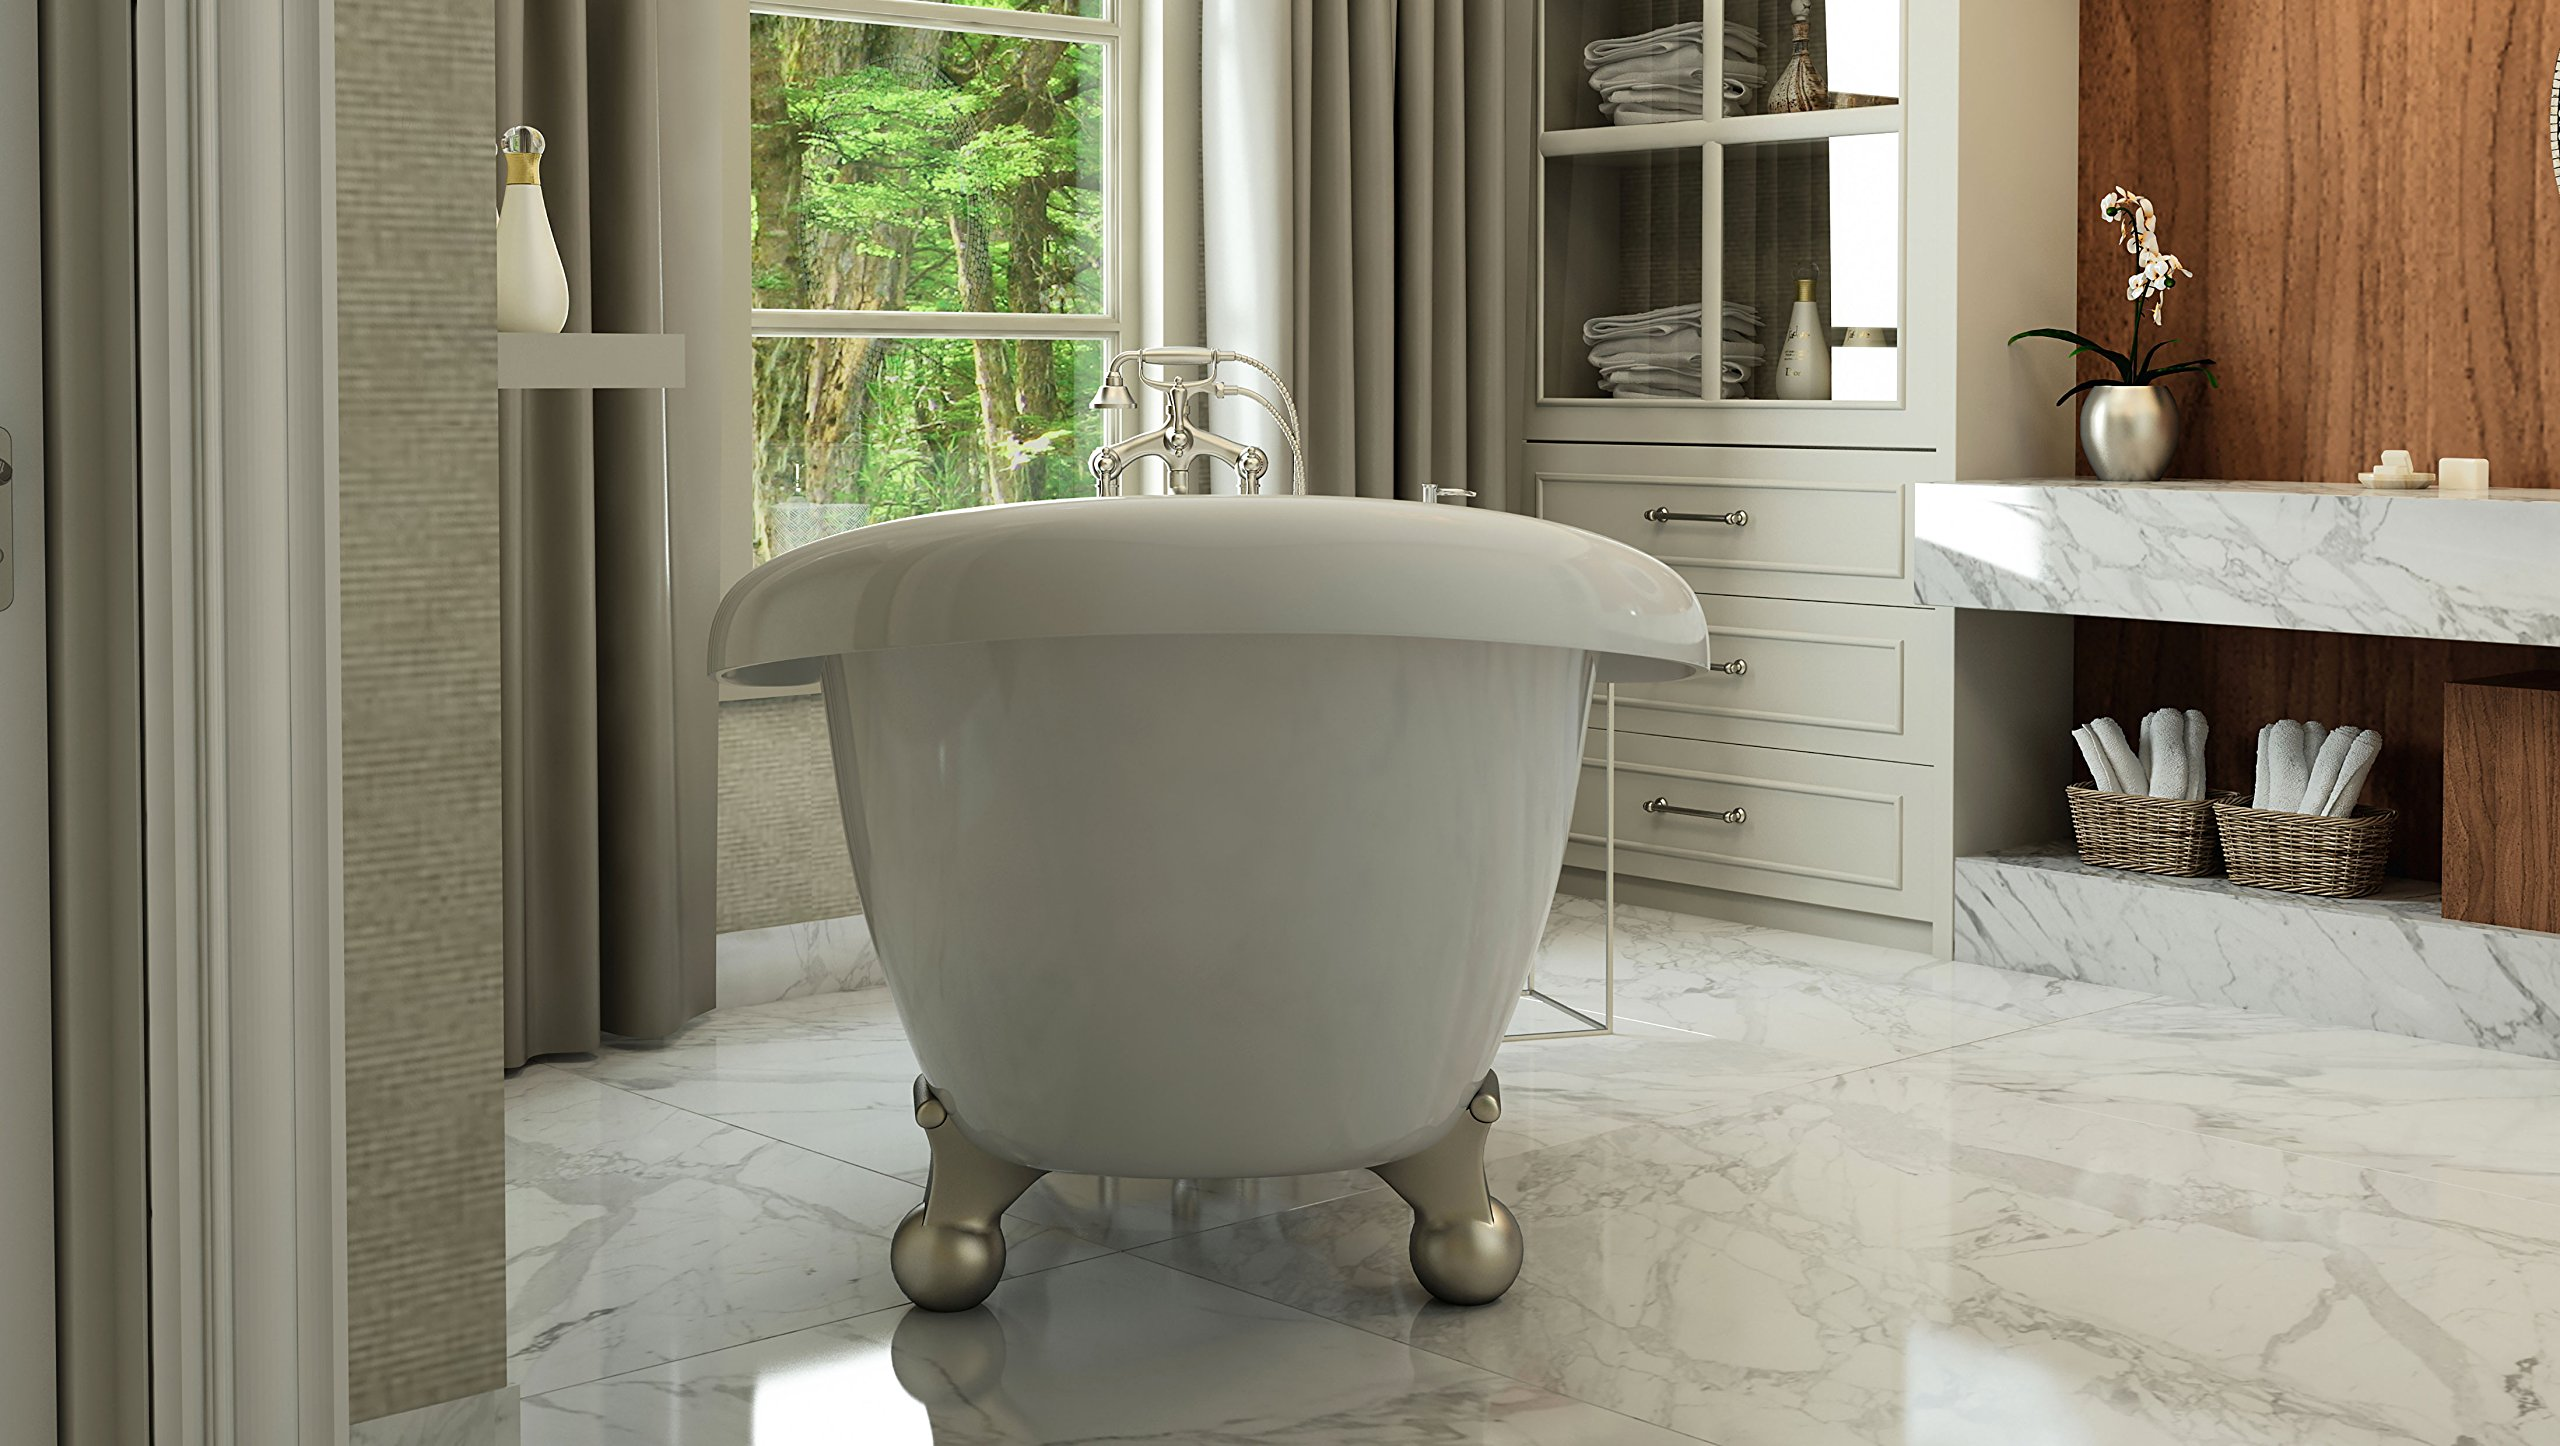 Luxury 60 inch Modern Clawfoot Tub in White with Stand-Alone Freestanding Tub Design, Includes Modern Brushed Nickel Cannonball Feet and Drain, From The Brookdale Collection by Pelham & White (Image #5)